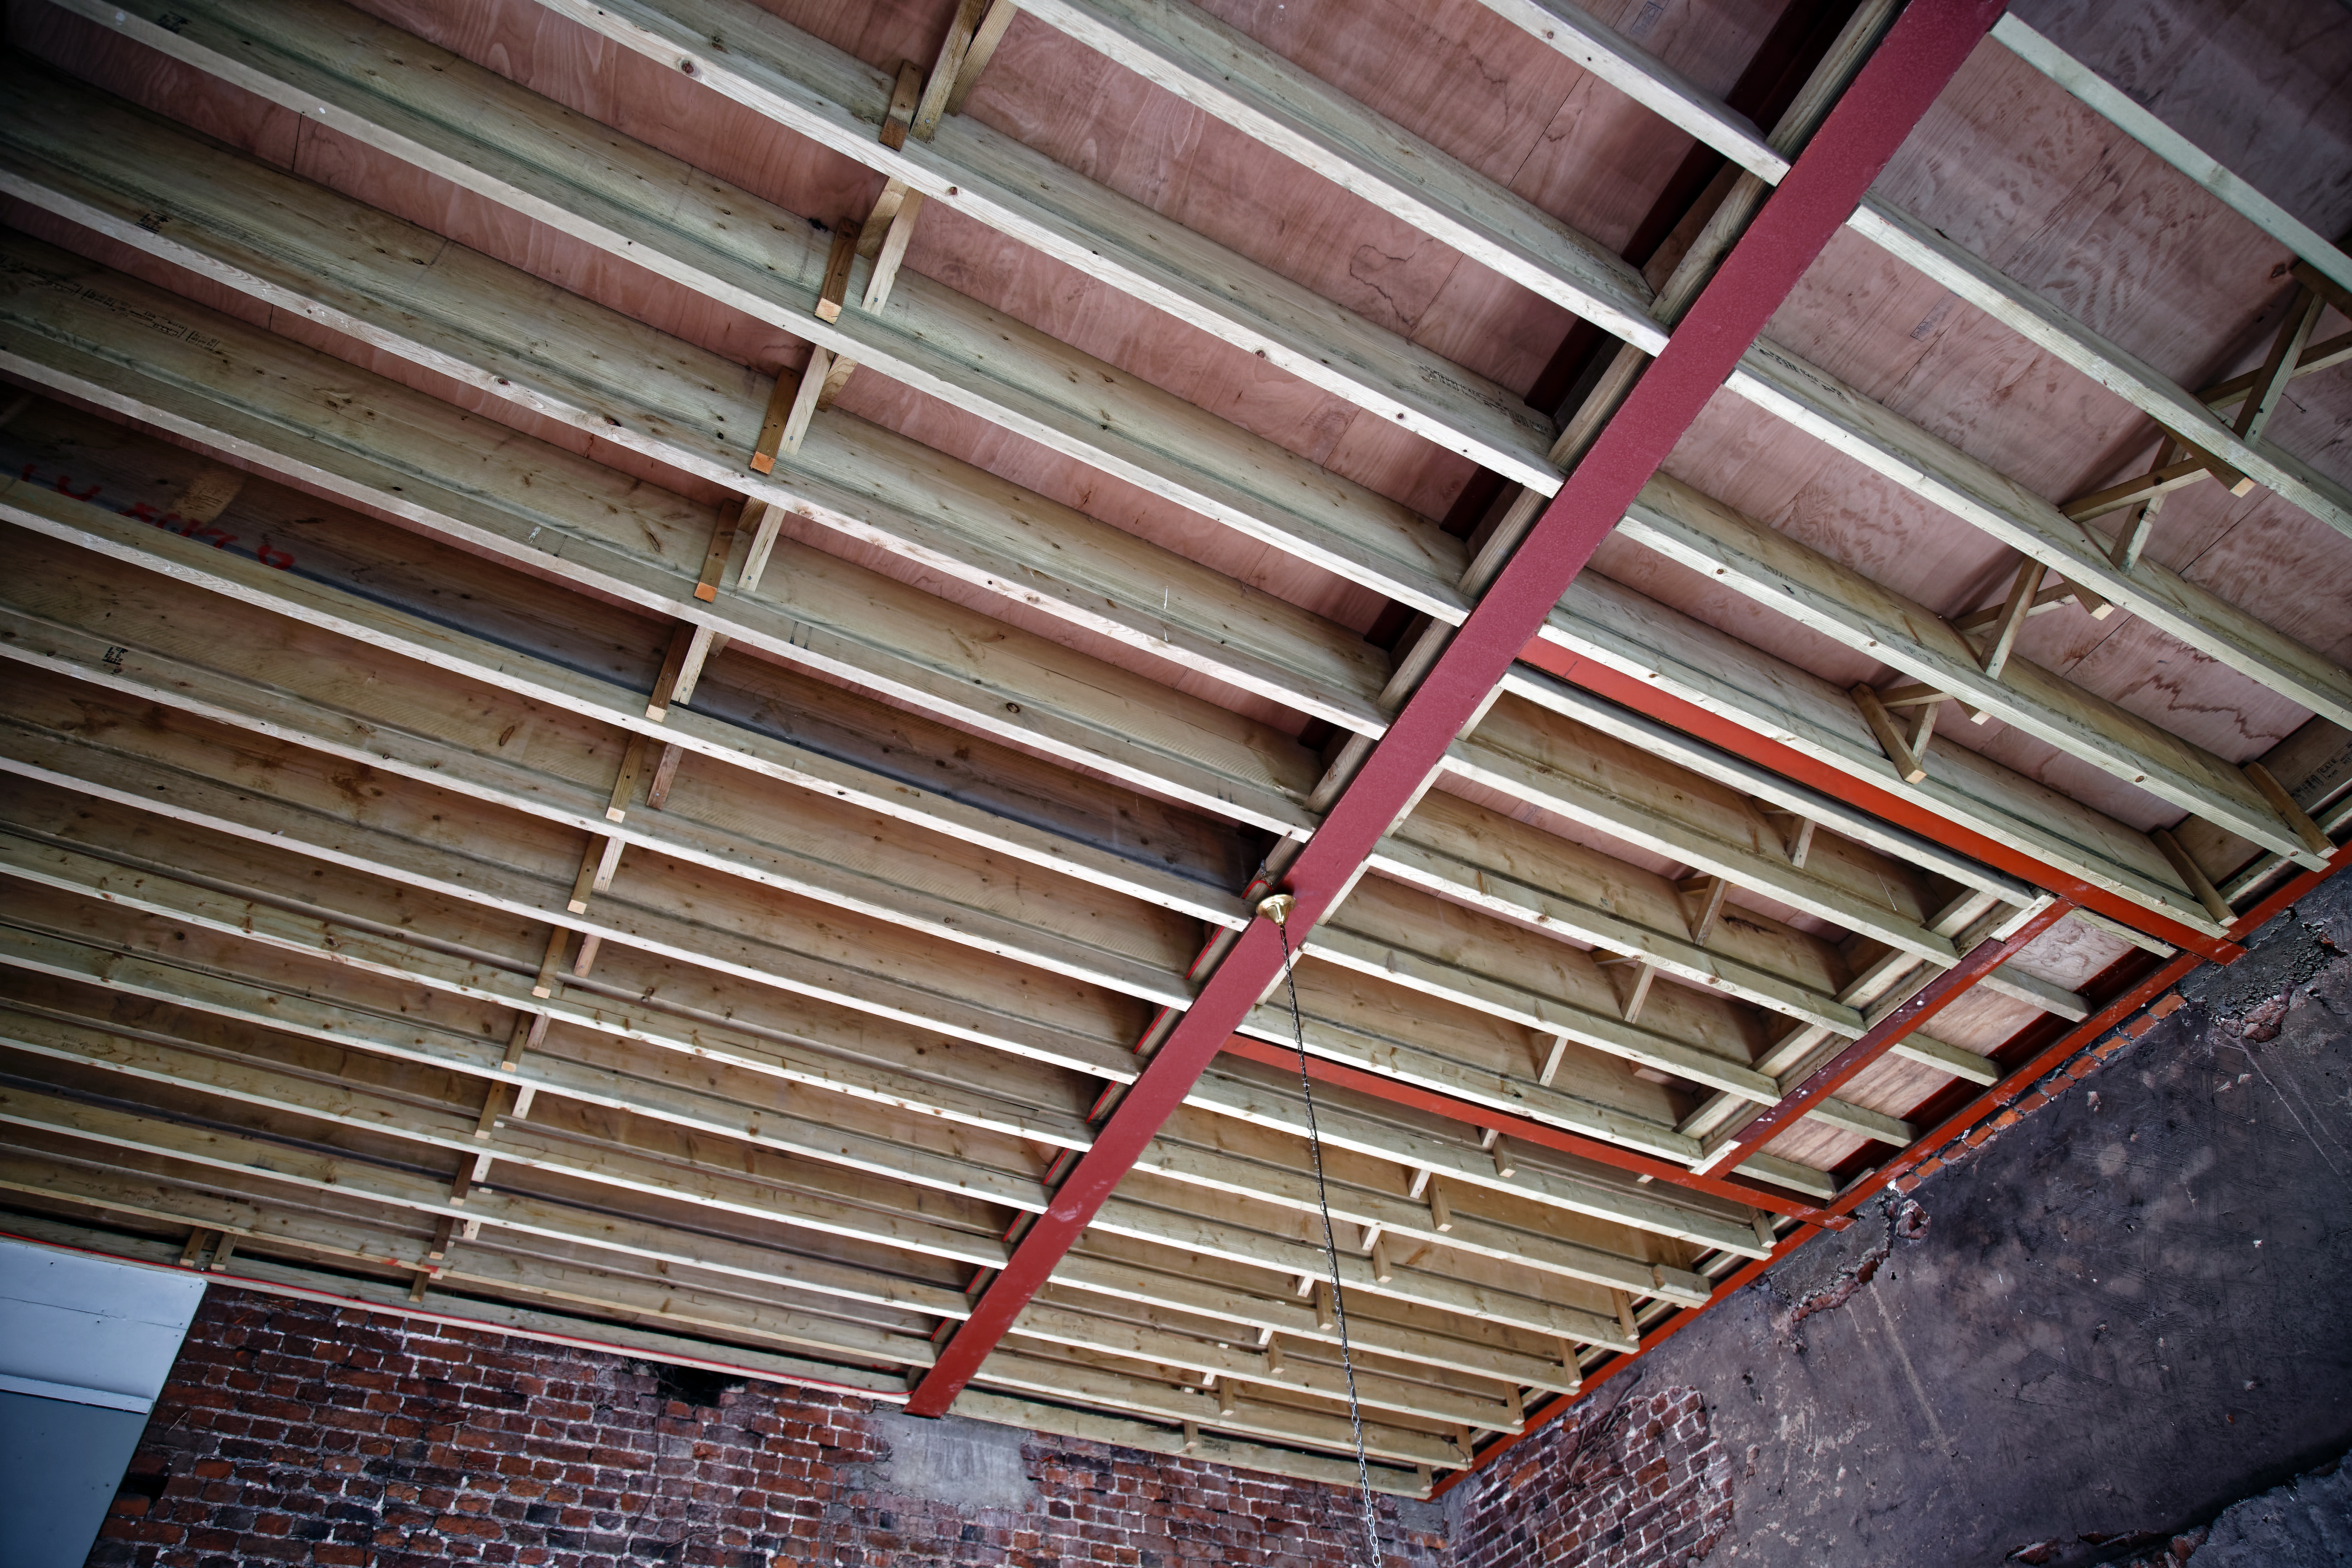 Copped Hall Ceiling Joists And Beams